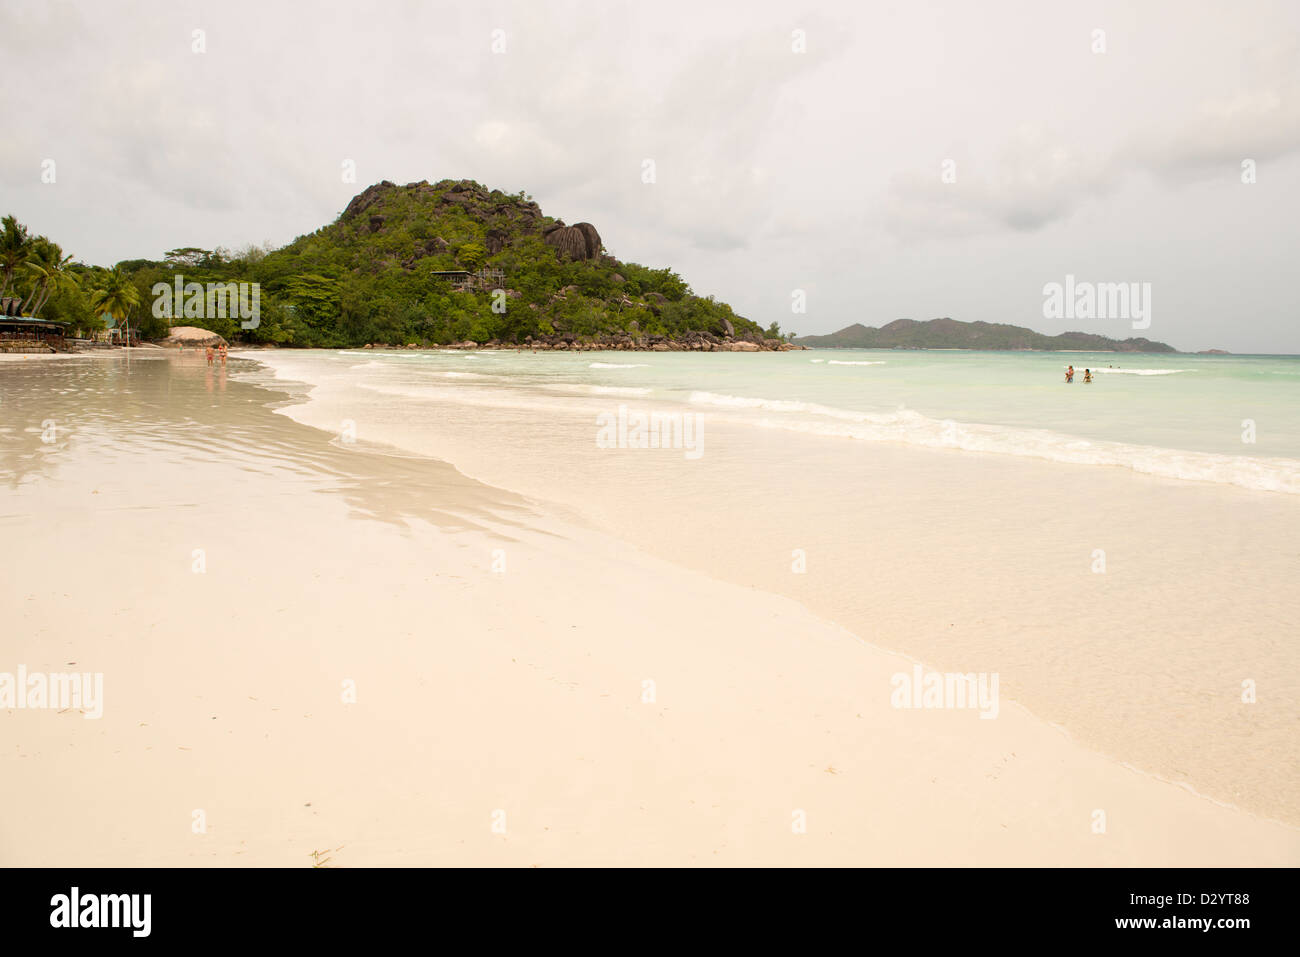 Beach setting on the beach in Seychelles, Denis private island, Indian Ocean Stock Photo